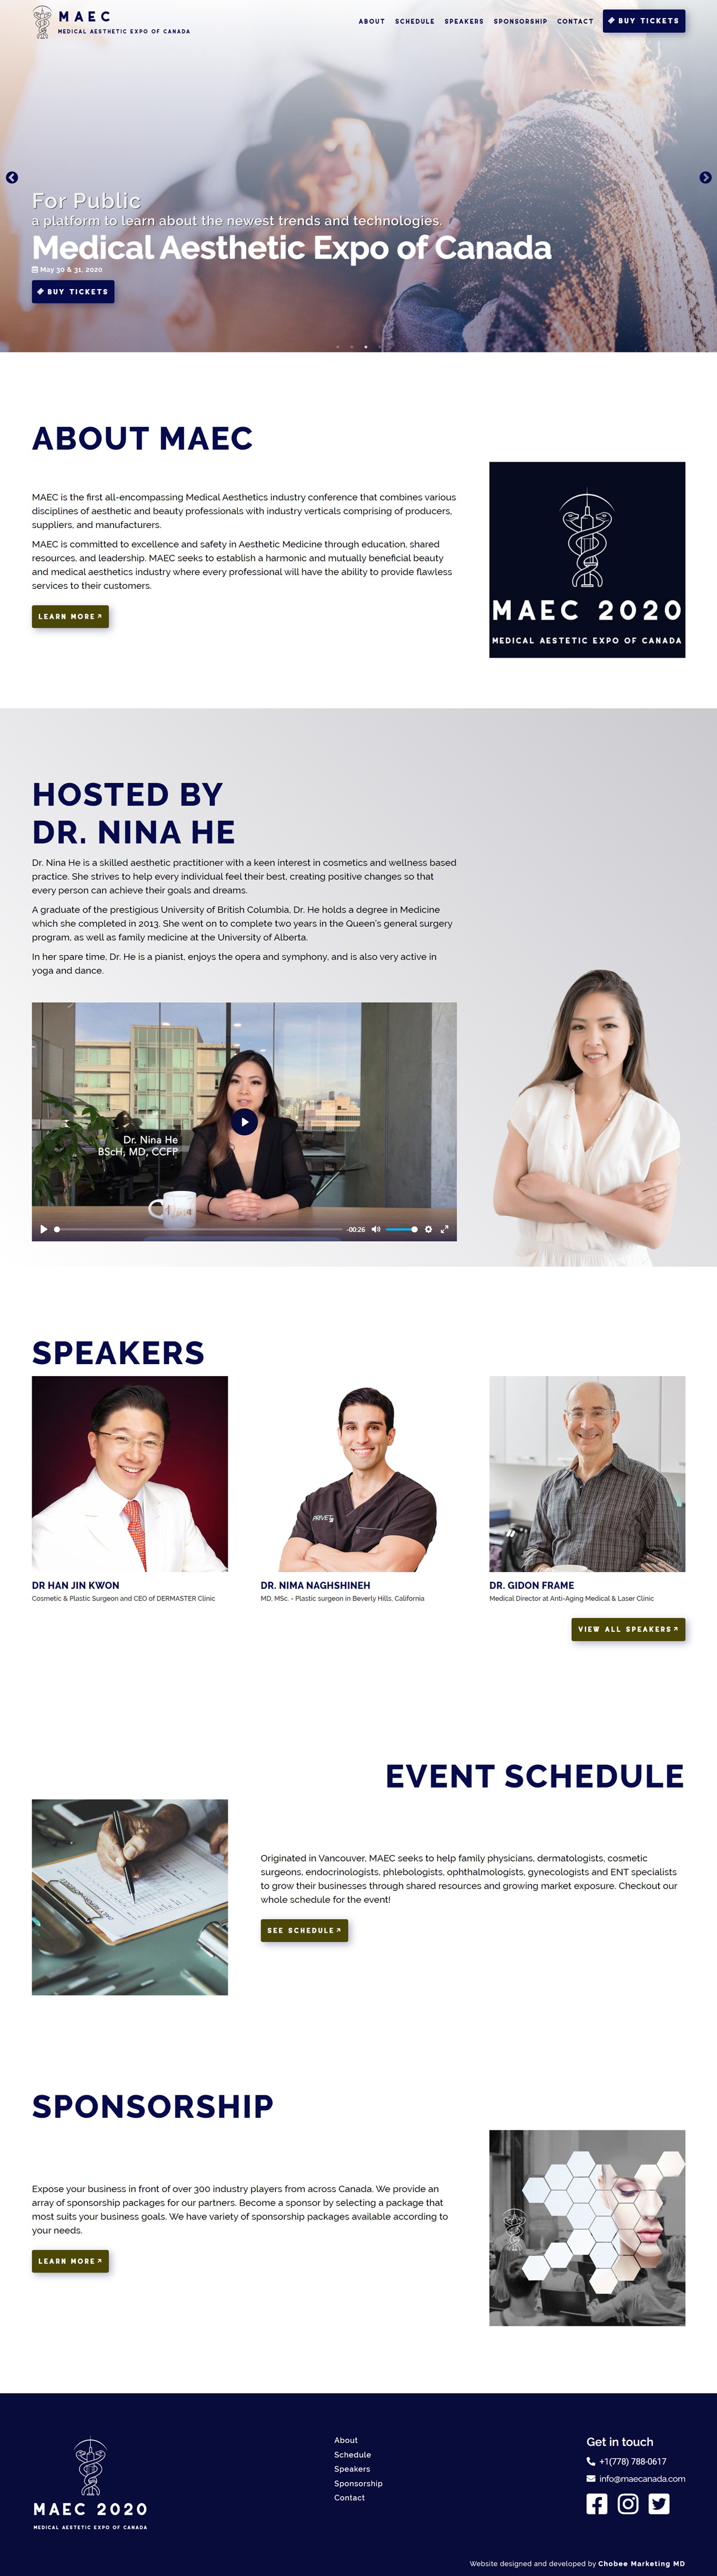 Medical Aesthetic Expo of Canada Website